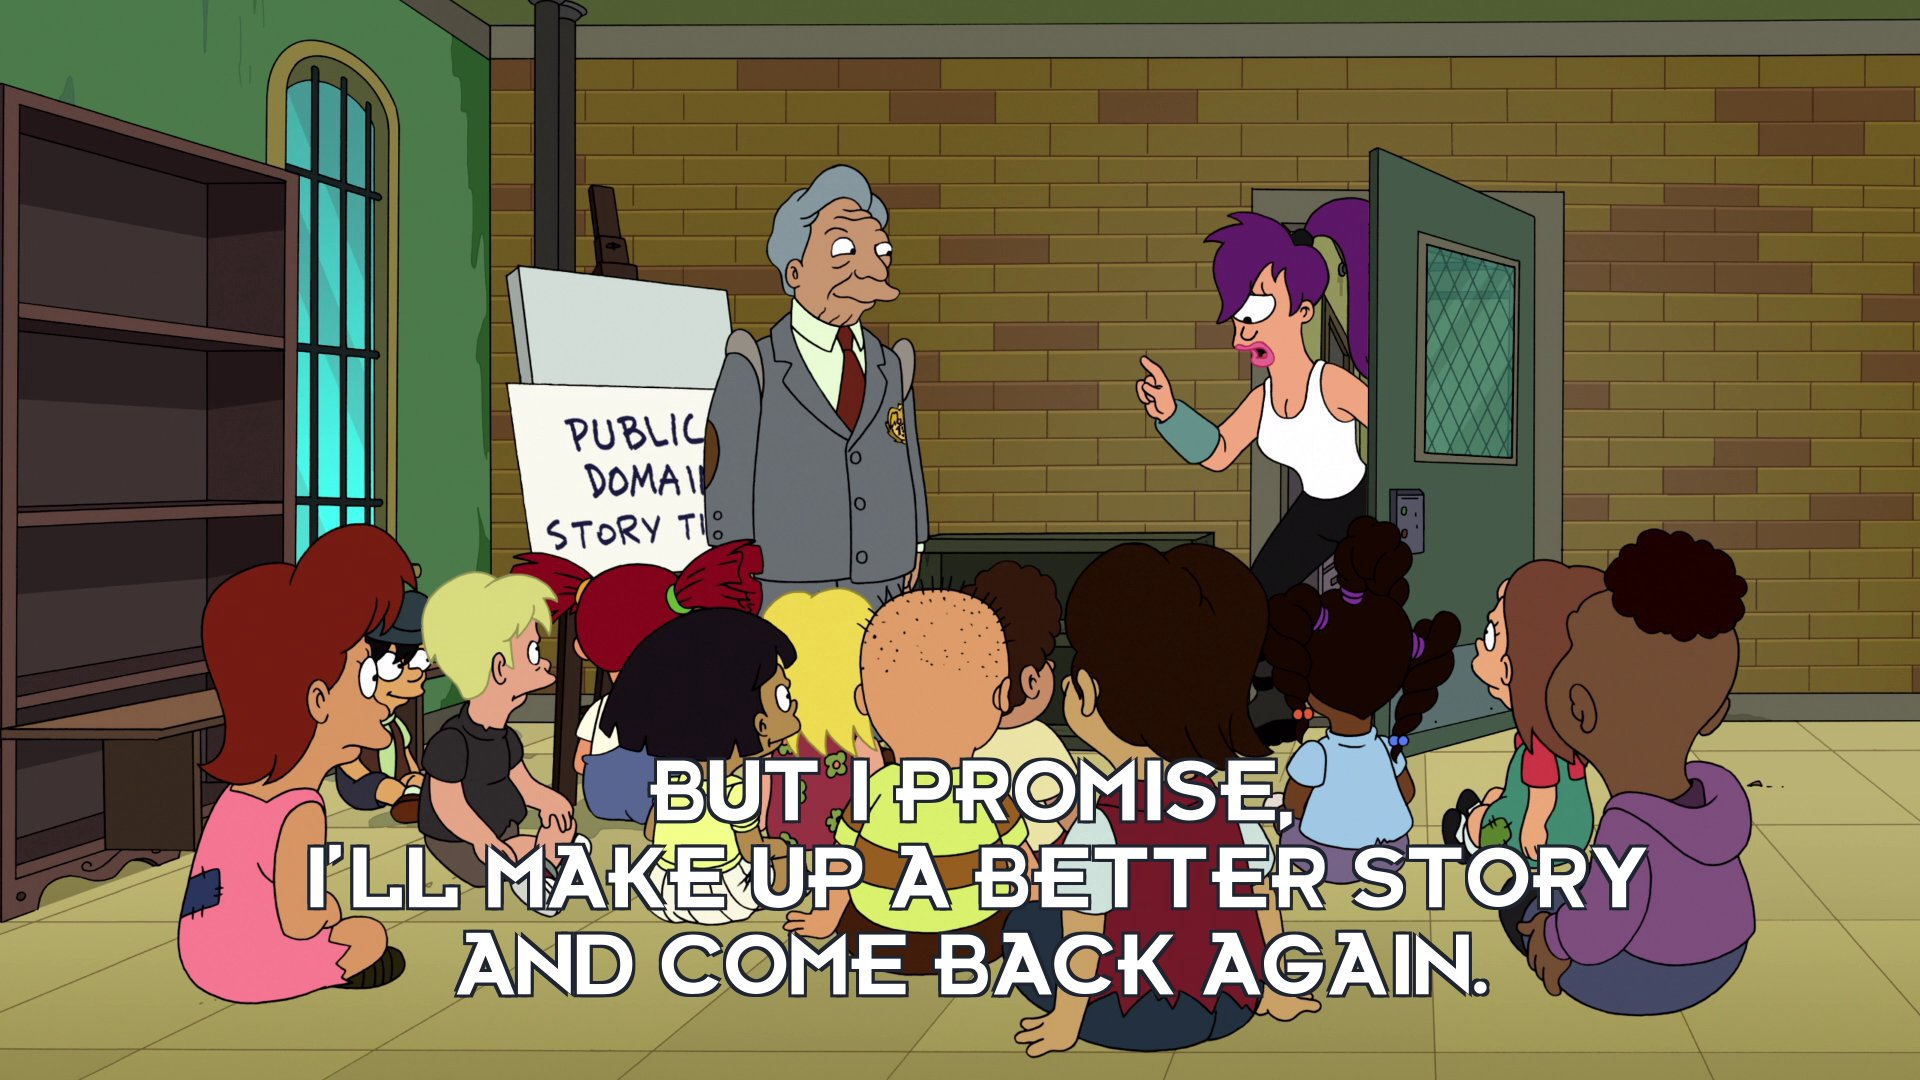 Turanga Leela: But I promise, I'll make up a better story and come back again.